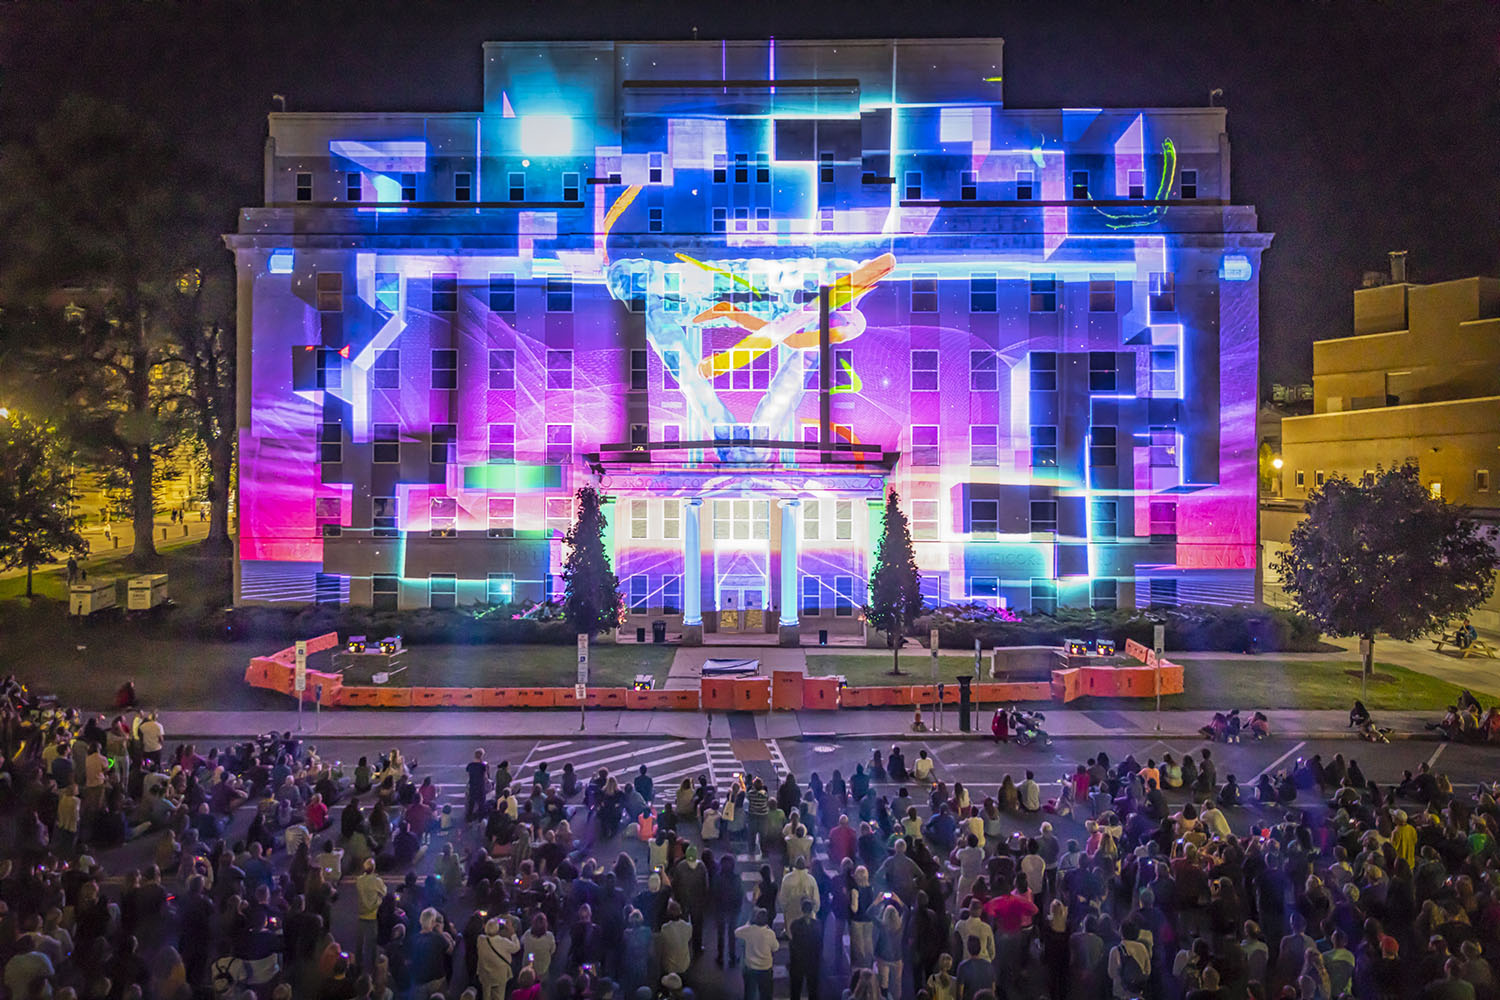 The LUMA Projection Arts Festival features a variety of colorful light shows projected on top of downtown Binghamton buildings.